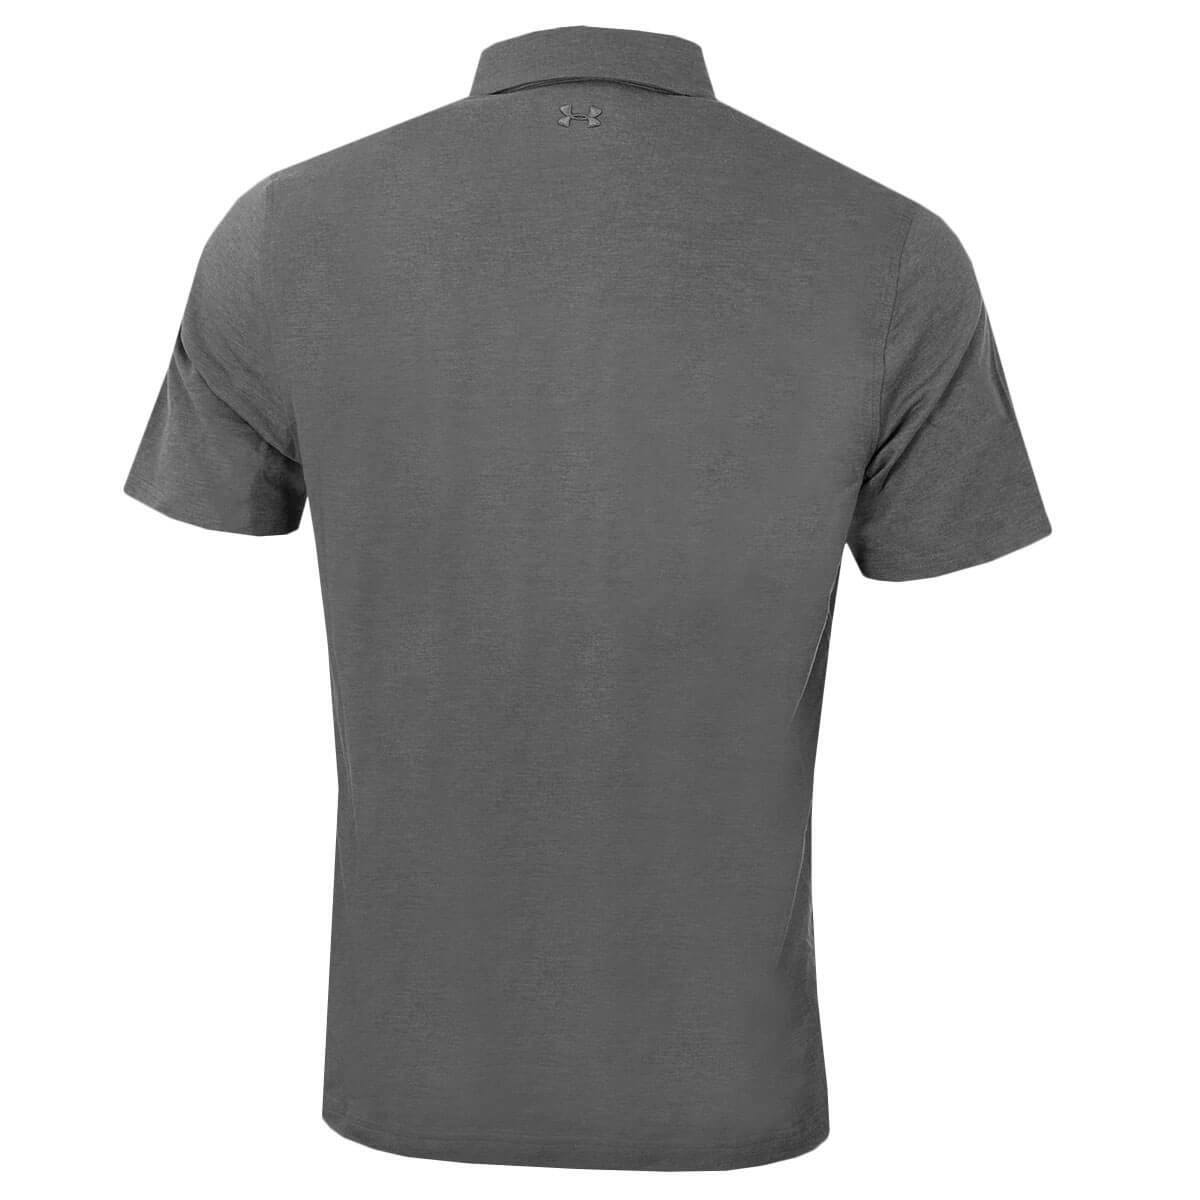 Under-Armour-Mens-2019-CC-Scramble-Charged-Cotton-Stretch-Golf-Polo-Shirt thumbnail 26